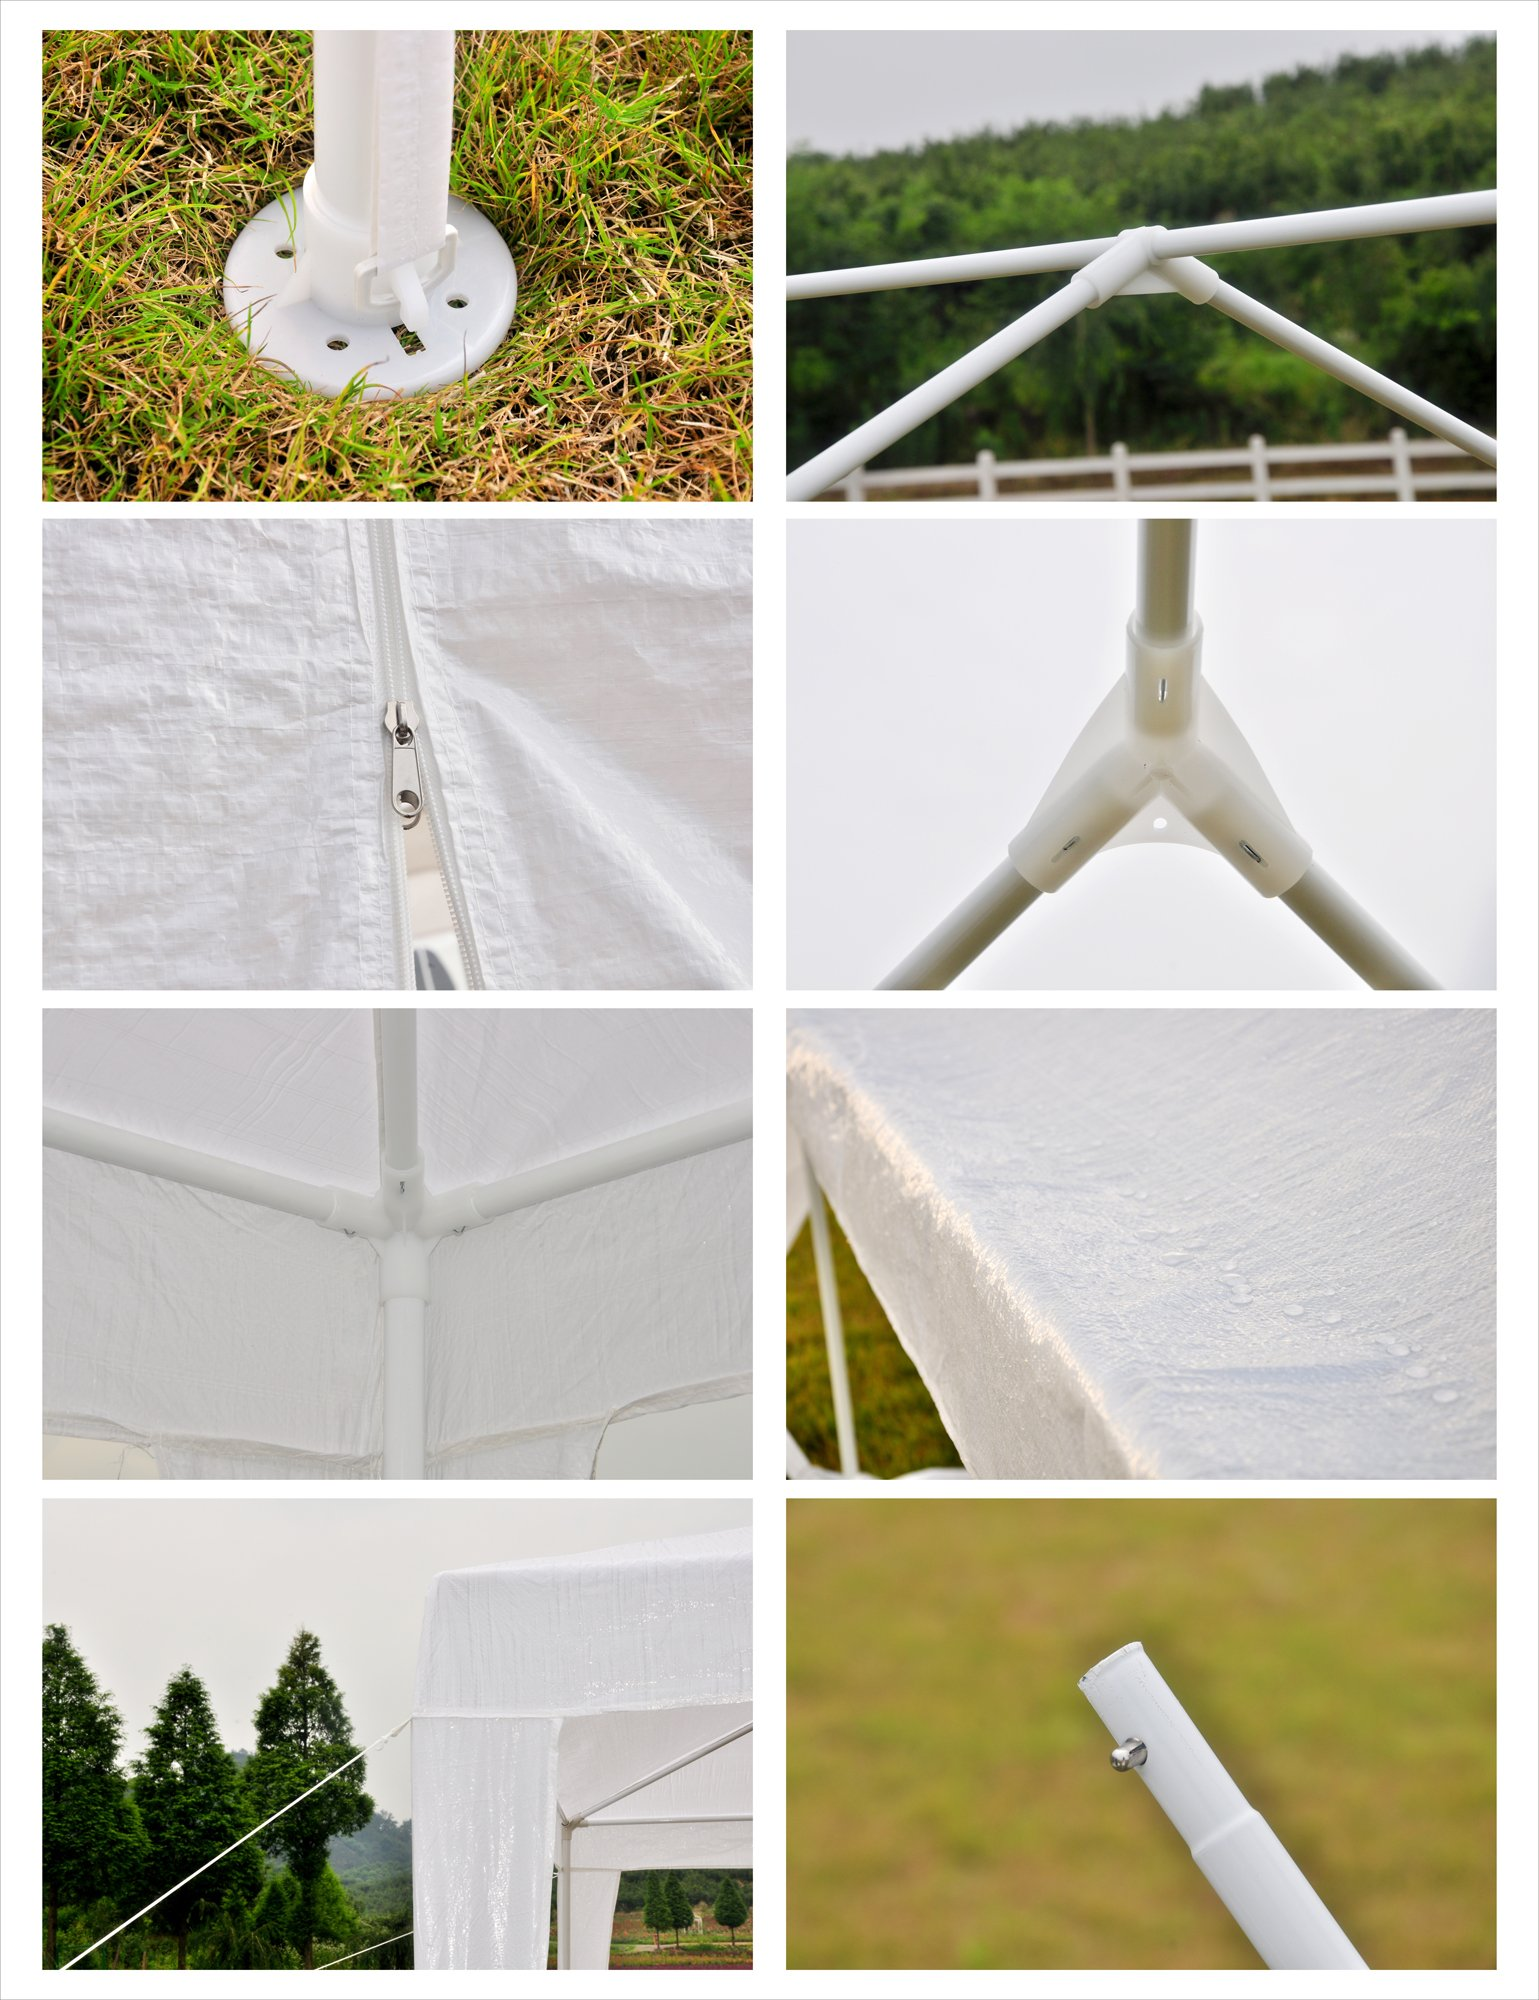 GOJOOASIS 10x20 Outdoor Gazebo Wedding Party Tent w/ 6 Removable Walls by GOJOOASIS (Image #3)